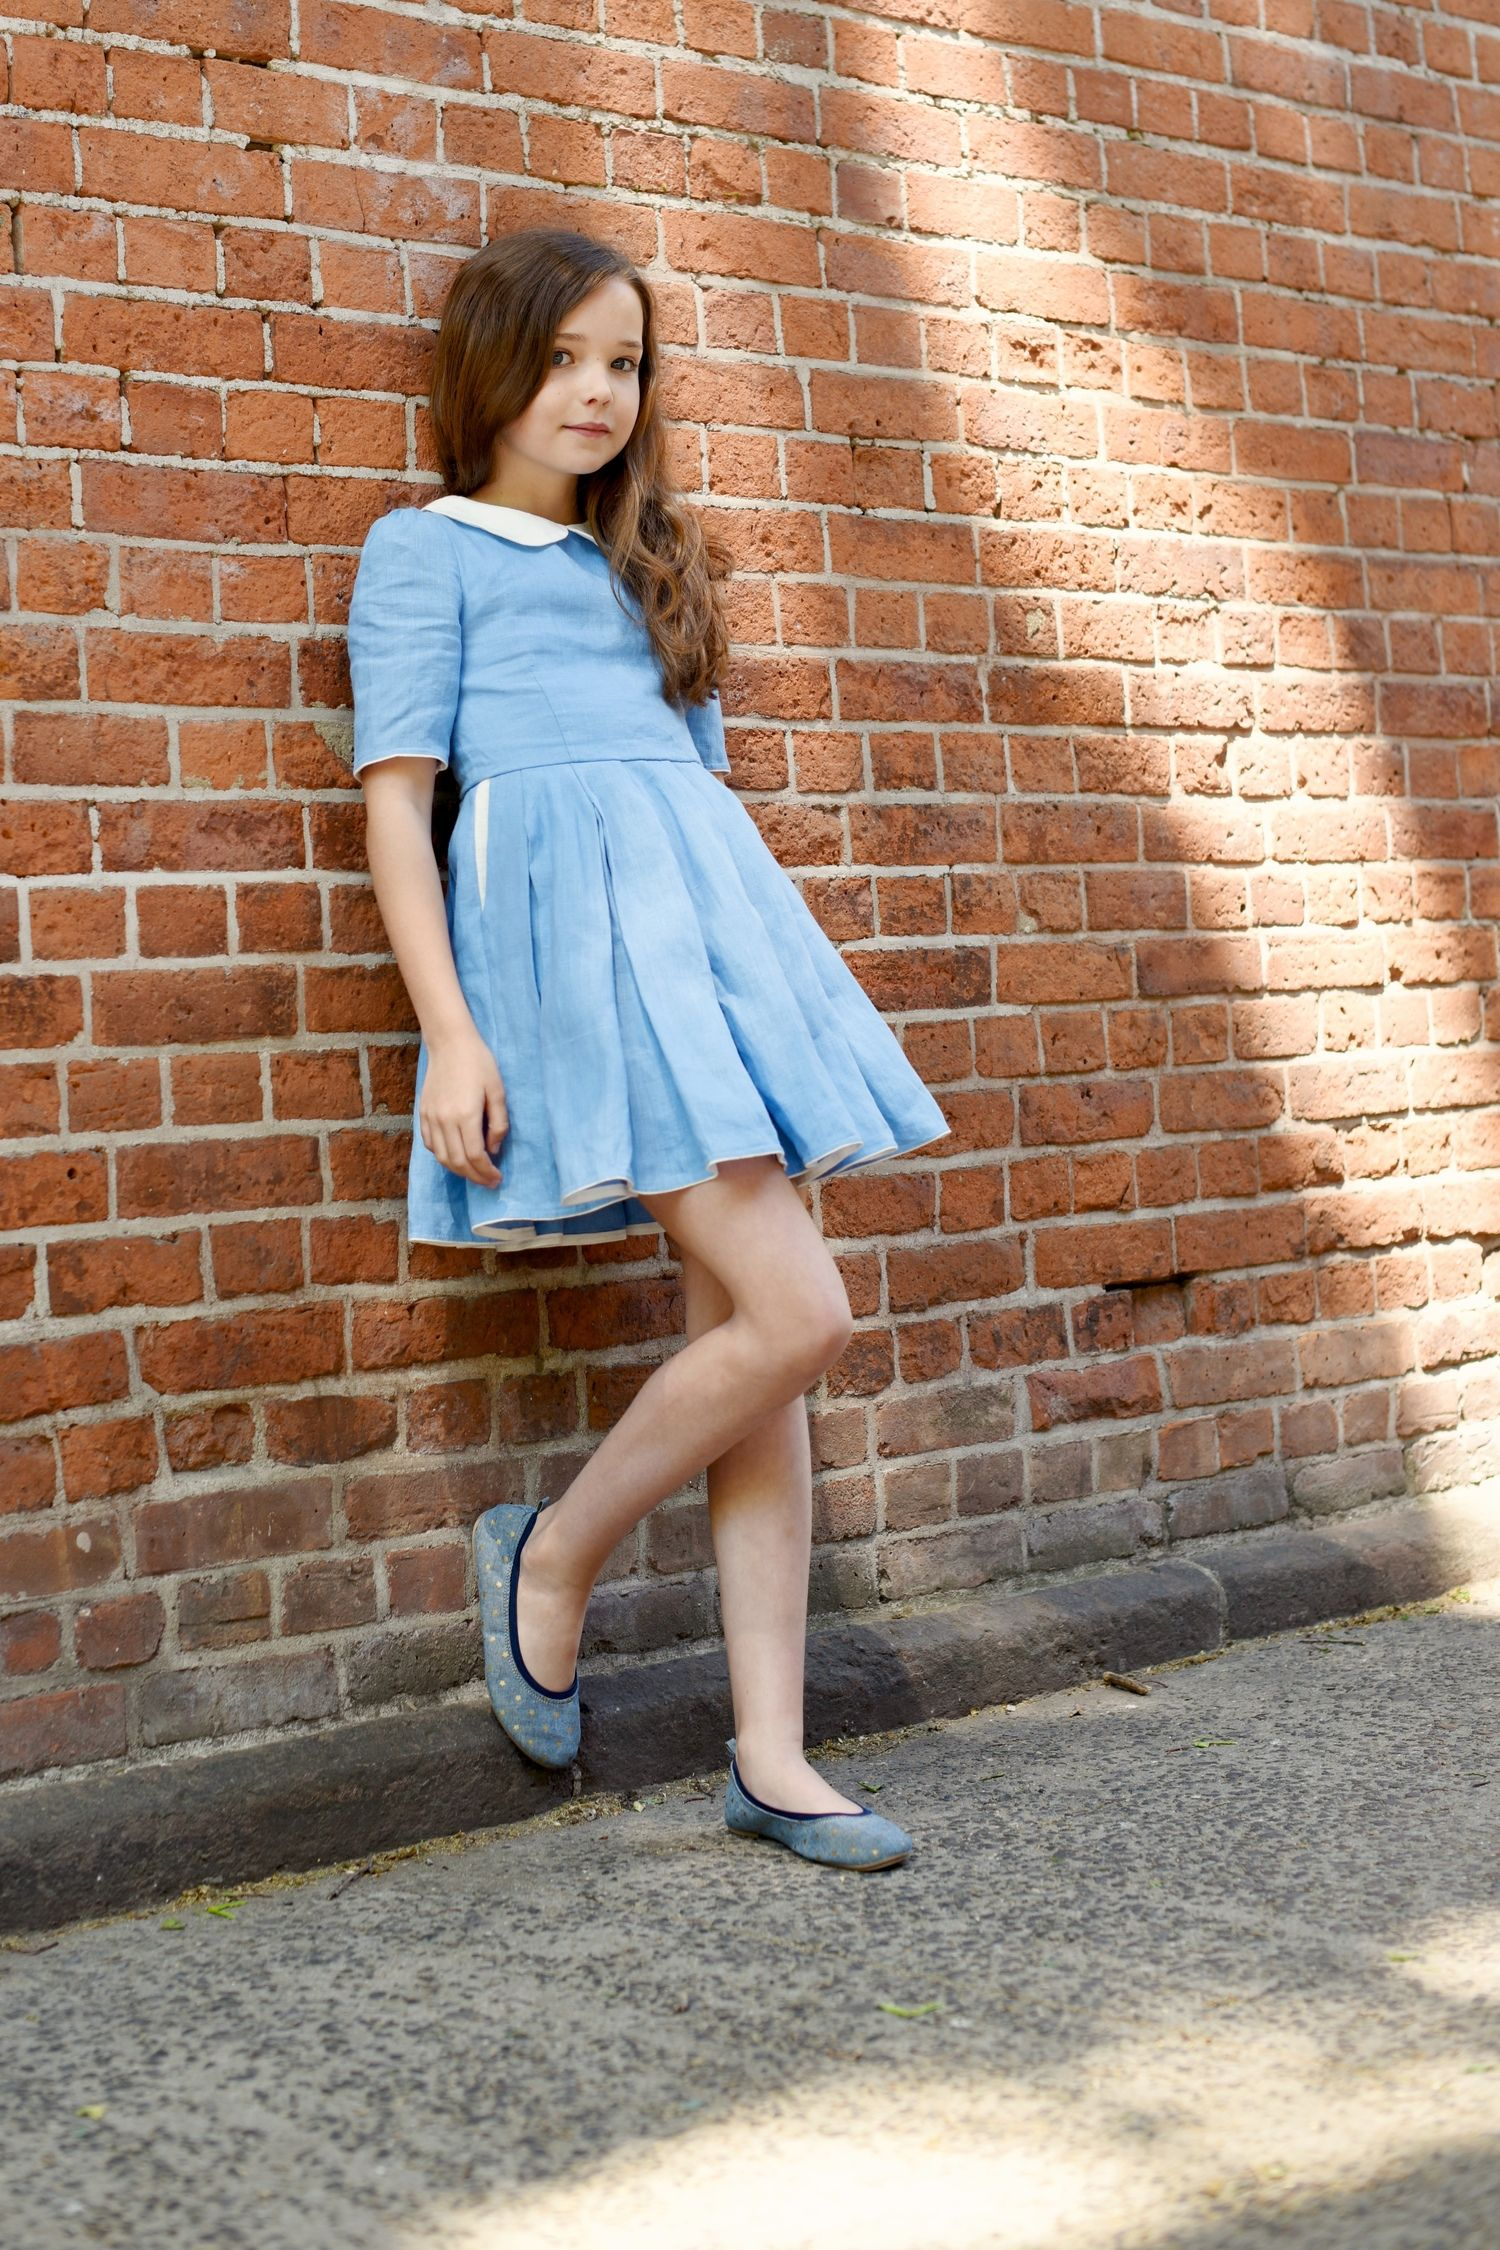 young-girls-dress-shoes